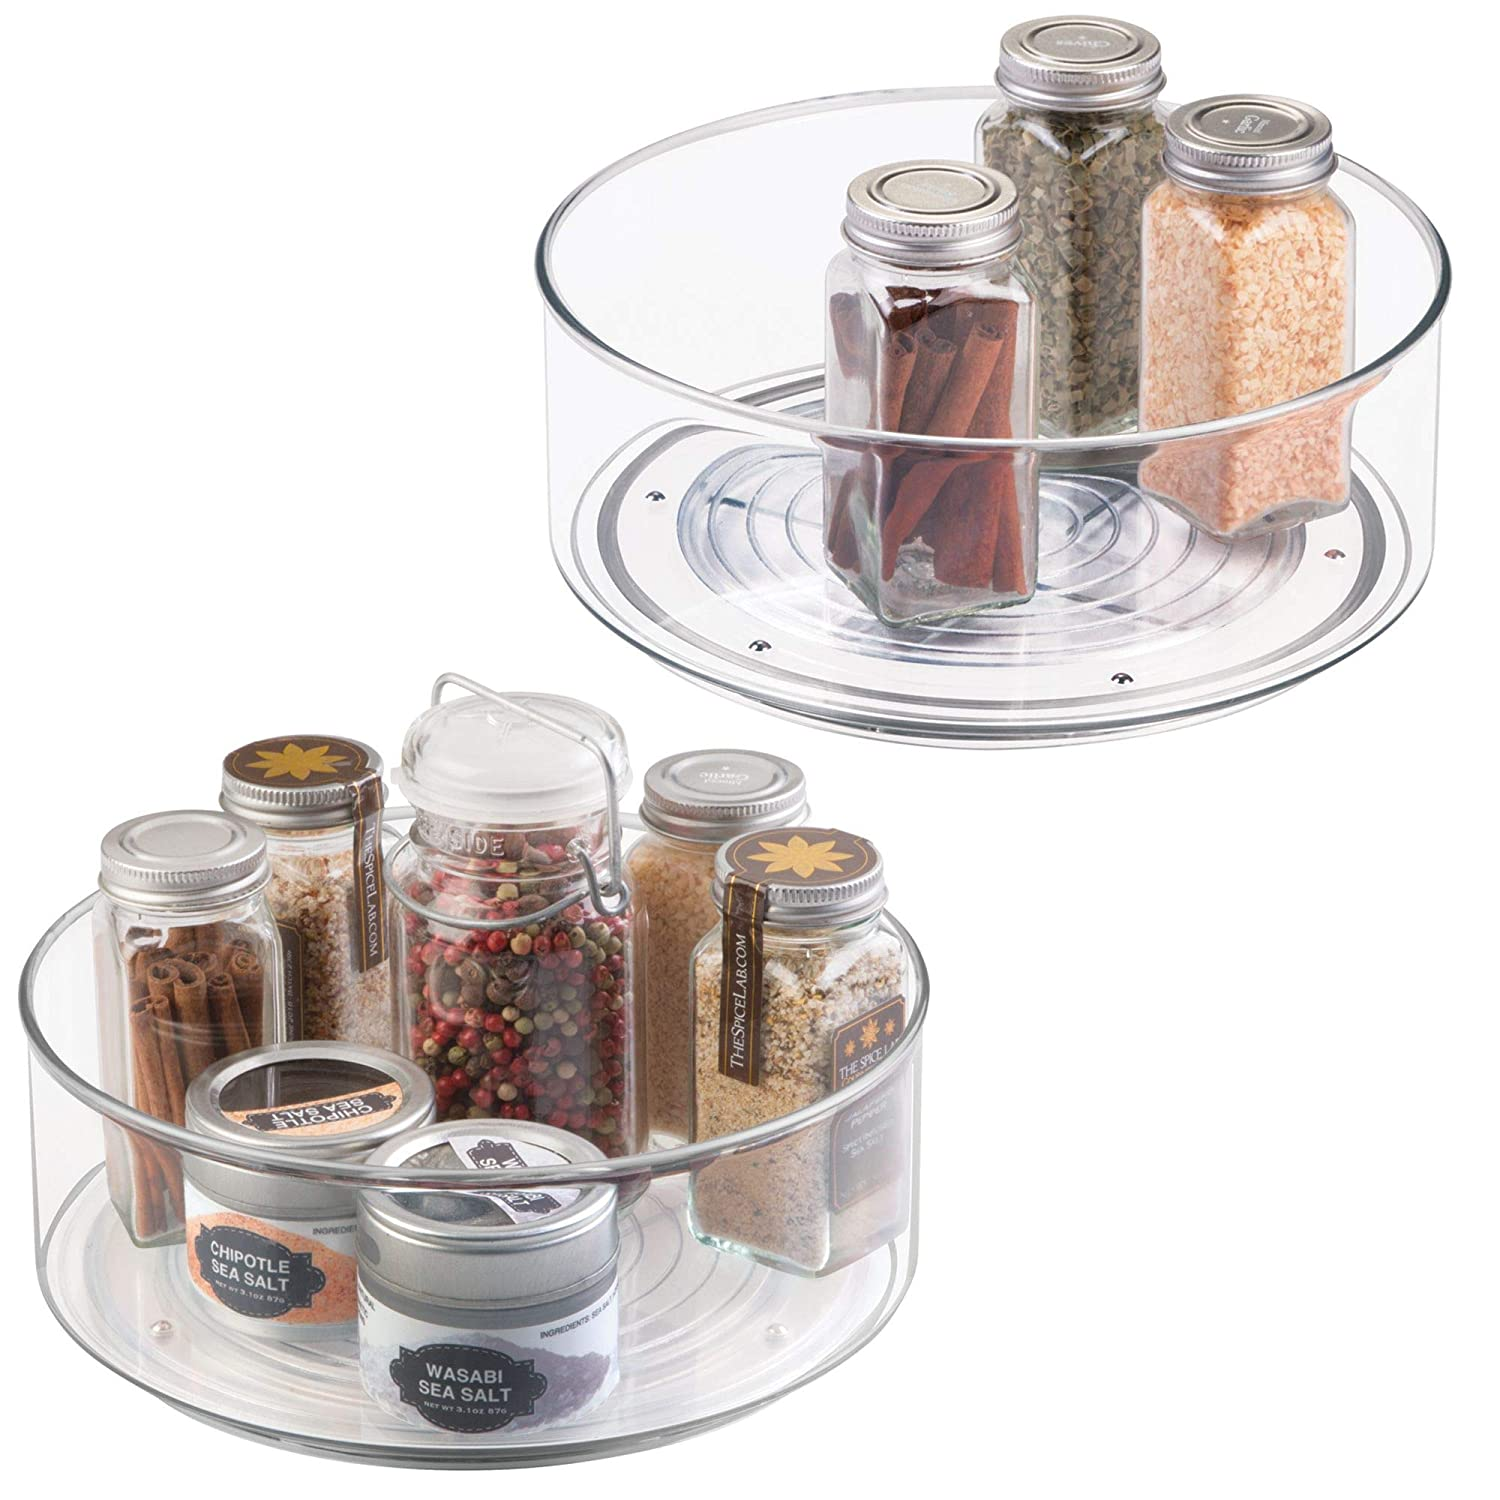 Plastic Round Lazy Susan Rotating Turntable, Food Storage Container Cabinets, Pantry, Refrigerator, Countertops, Spinning Organizer Spices, Condiments, Baking Supplies, 2 Pack - Clear